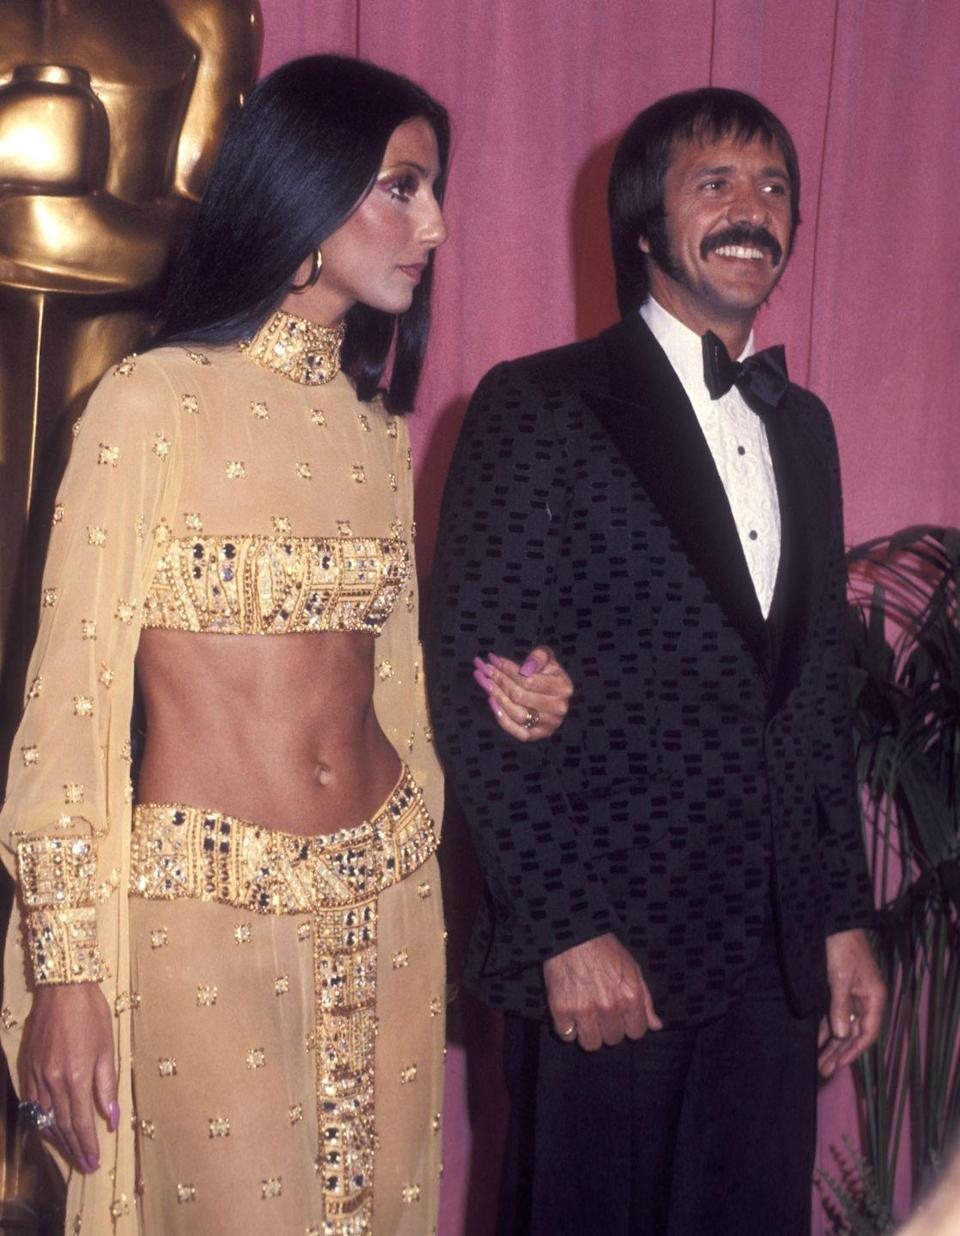 <p>Cher dons a golden two-piece on the arm of her husband and singing partner, Sonny Bono.</p>